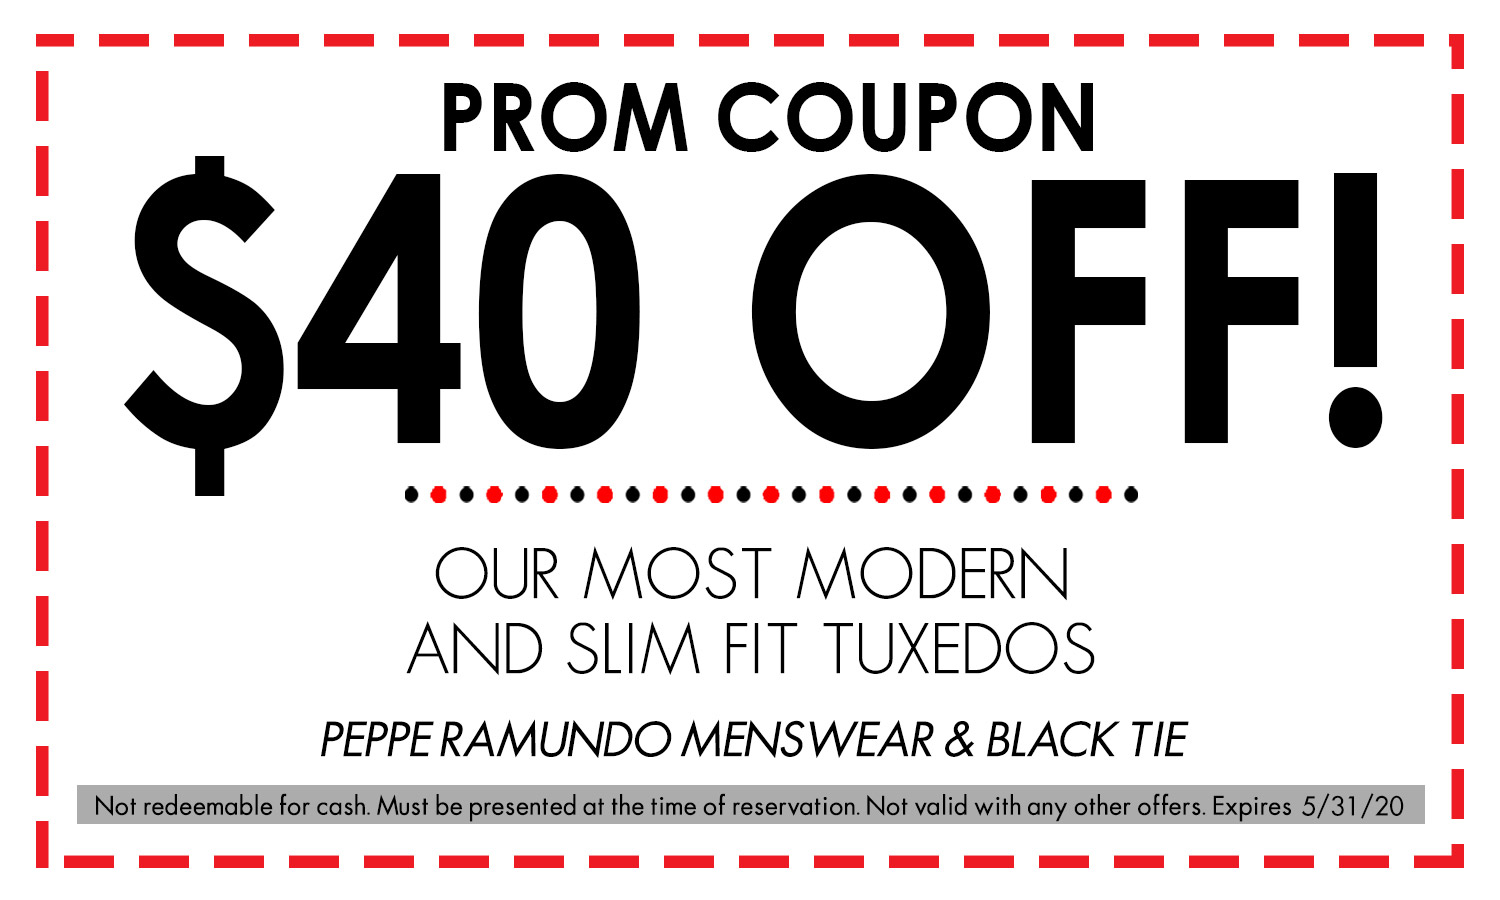 Prom Coupon